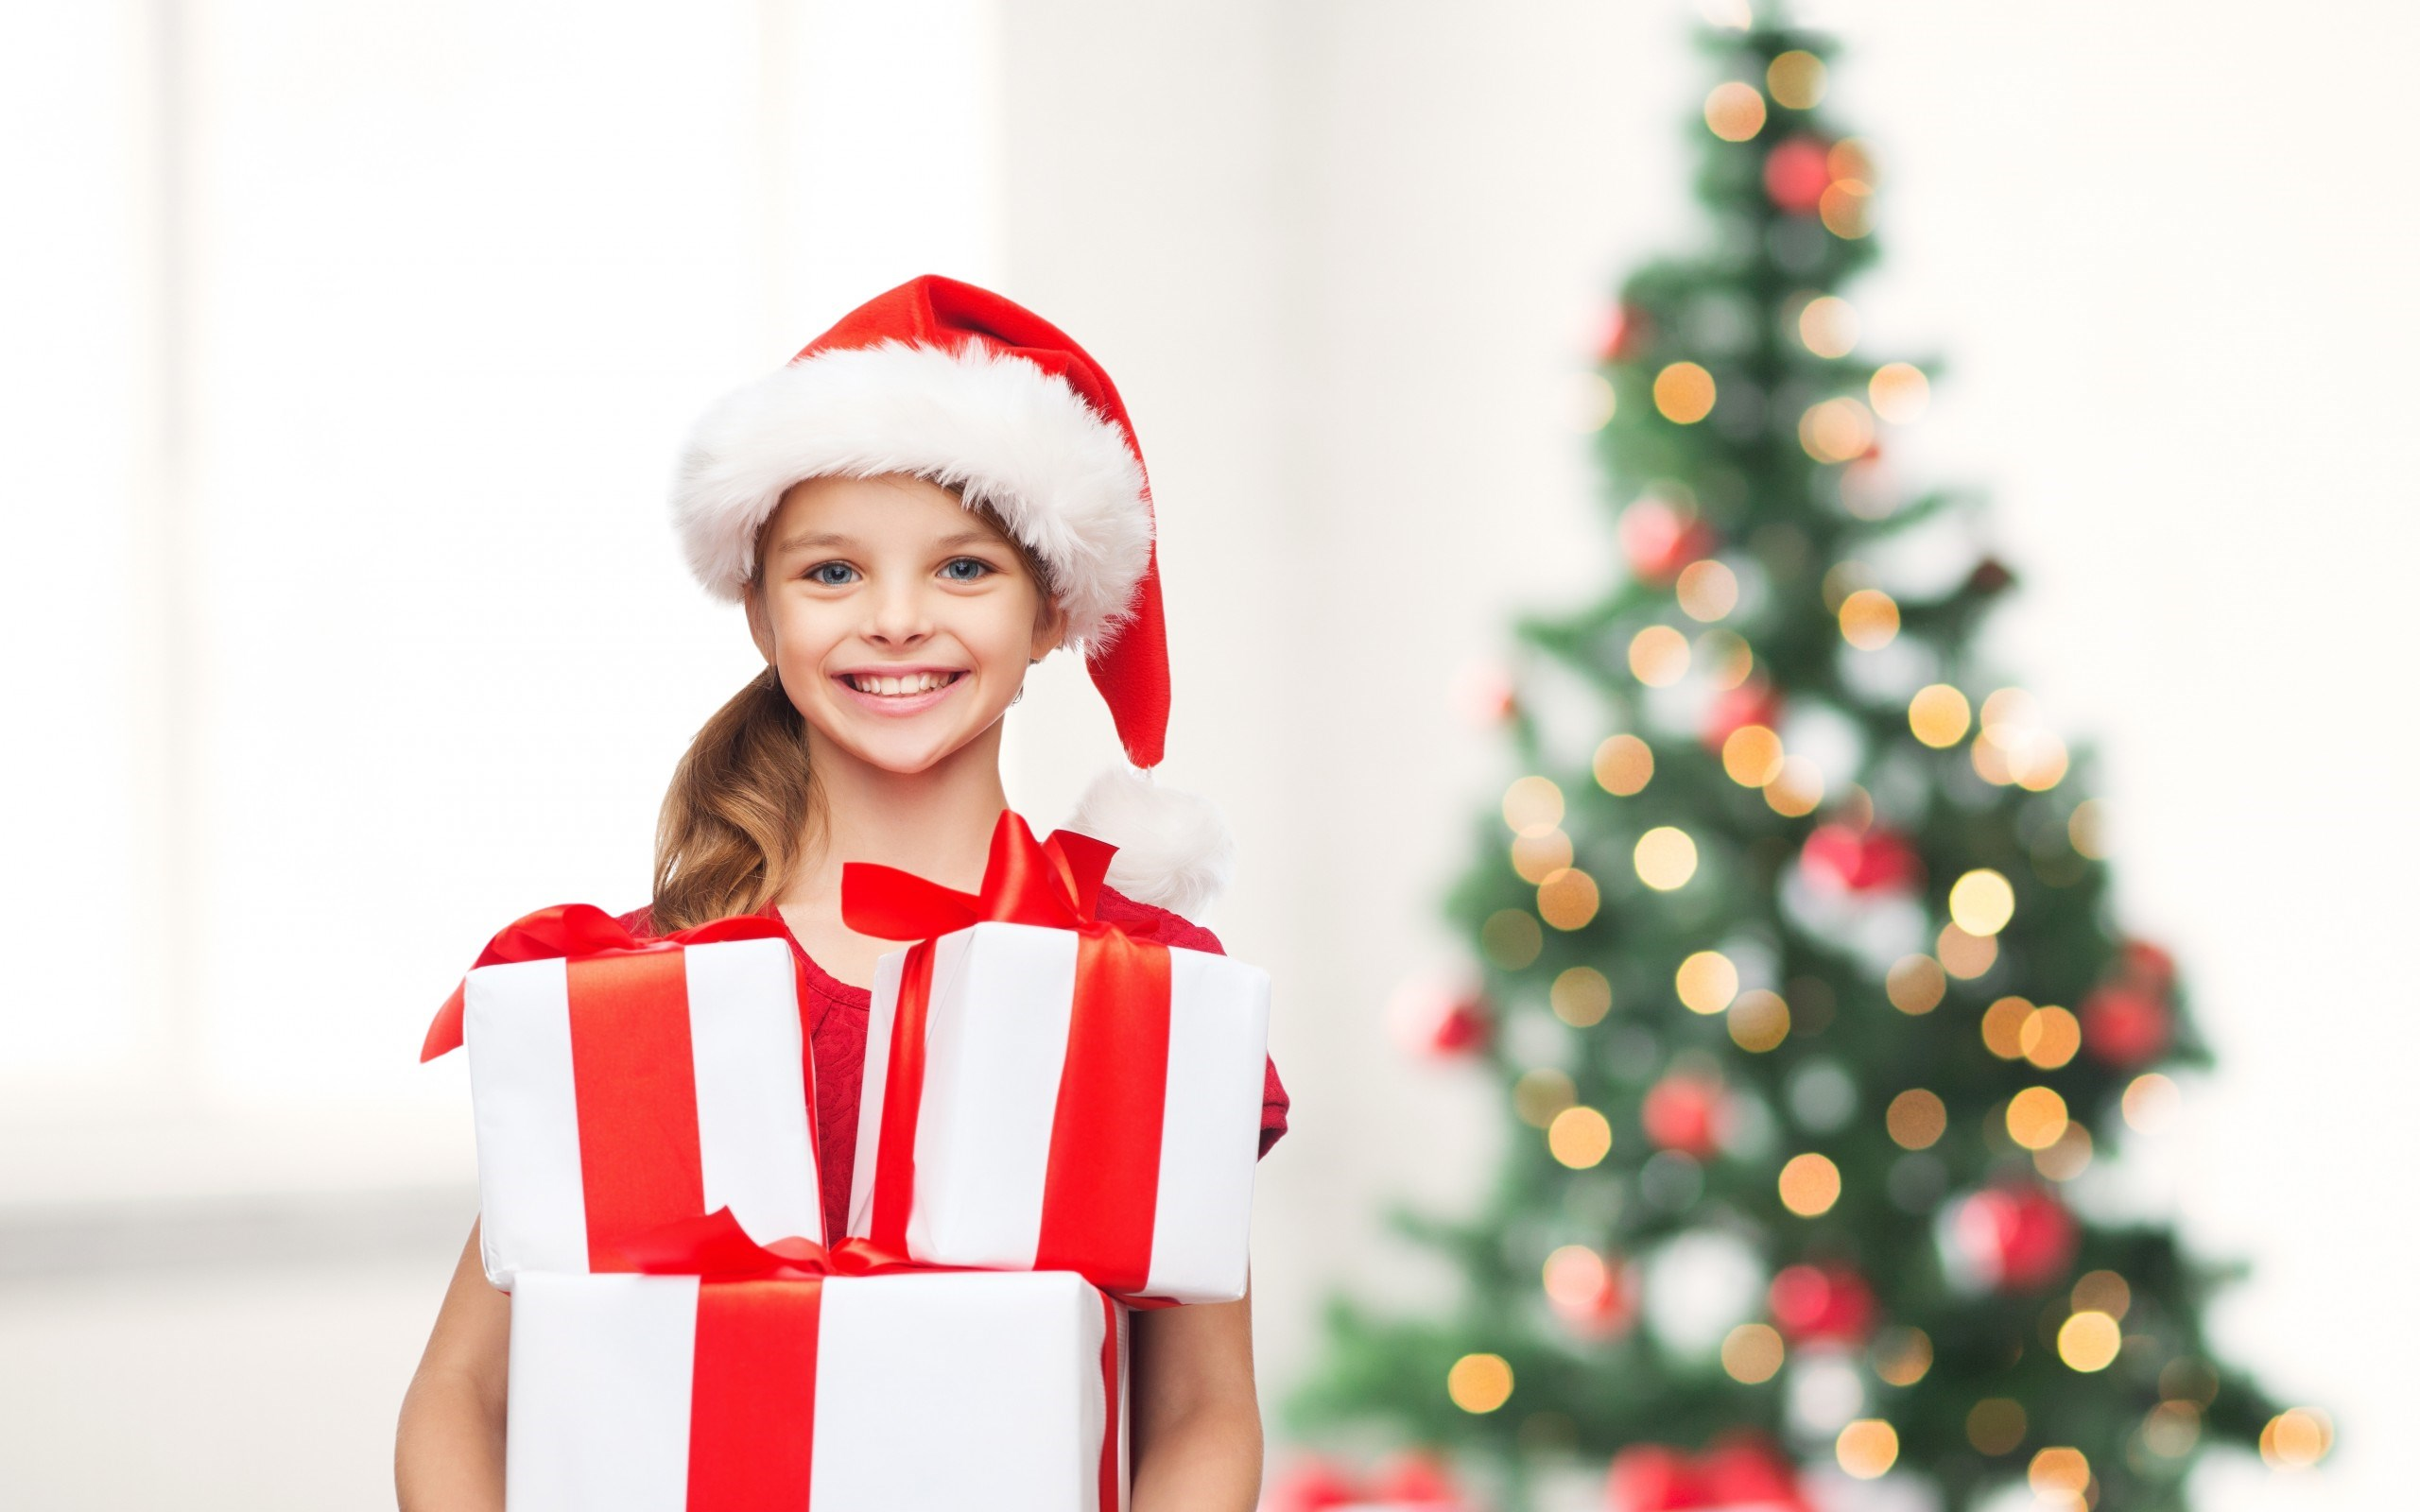 Merry Christmas Tree Little Girl Happy Smile Child Gifts New Year